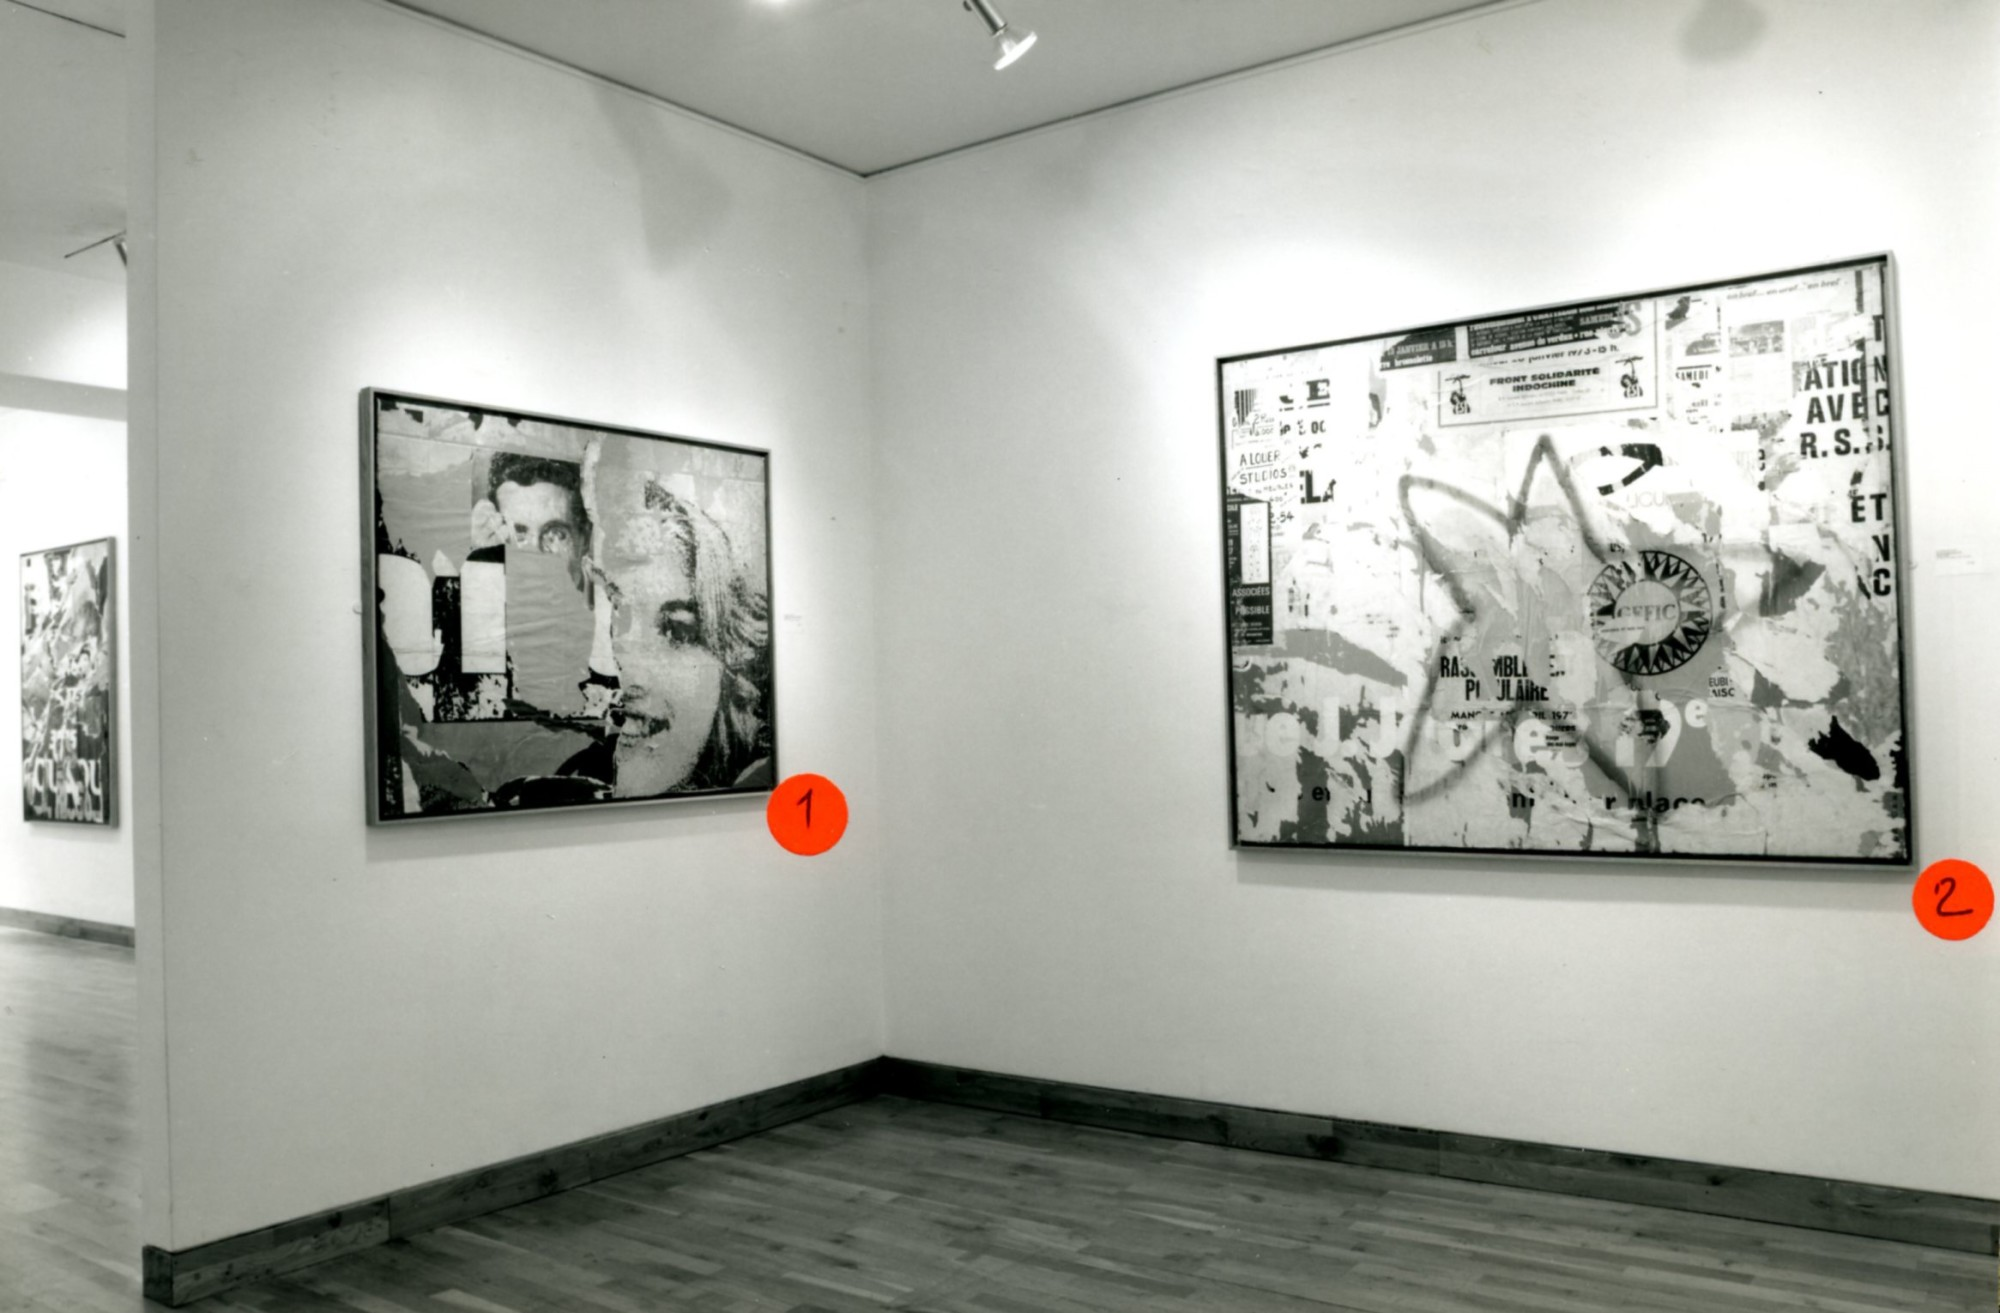 """<span class=""""link fancybox-details-link""""><a href=""""/exhibitions/147/works/image_standalone608/"""">View Detail Page</a></span><p>JACQUES VILLEGLE WORKS FROM 1955 - 1991 